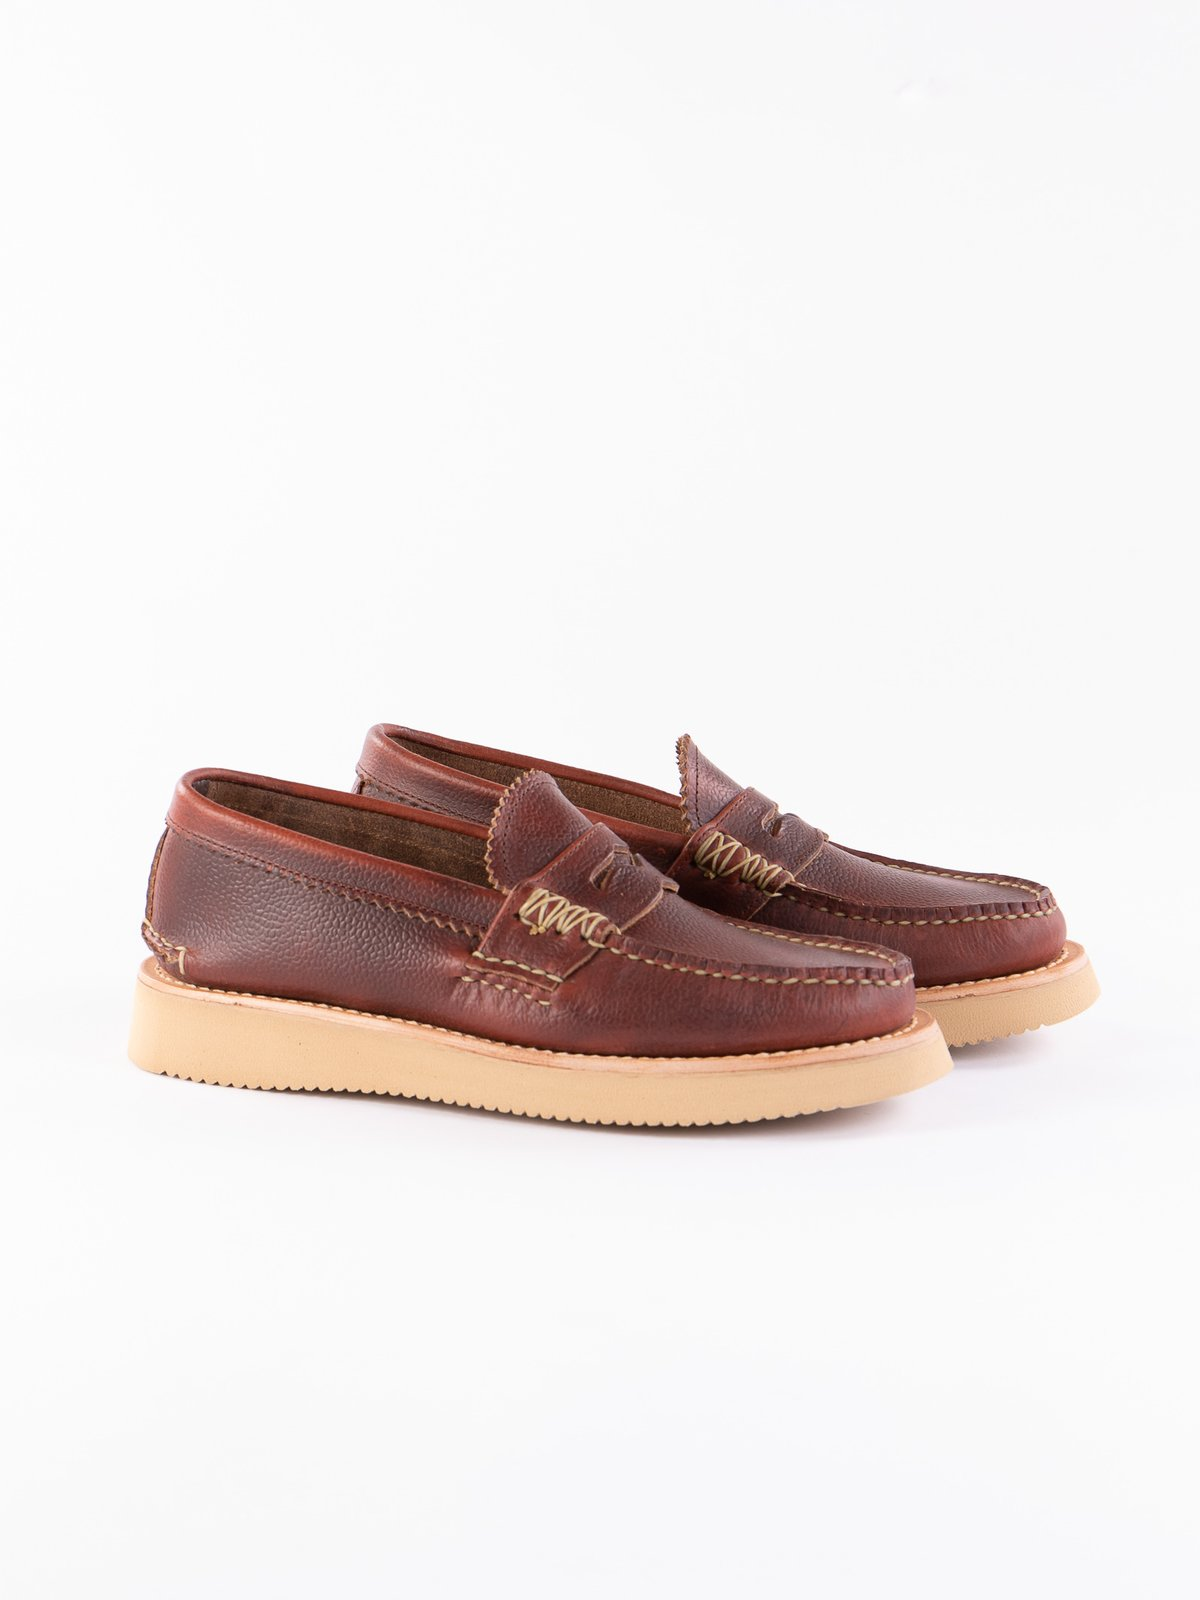 SG Tan Loafer Shoe Exclusive - Image 1